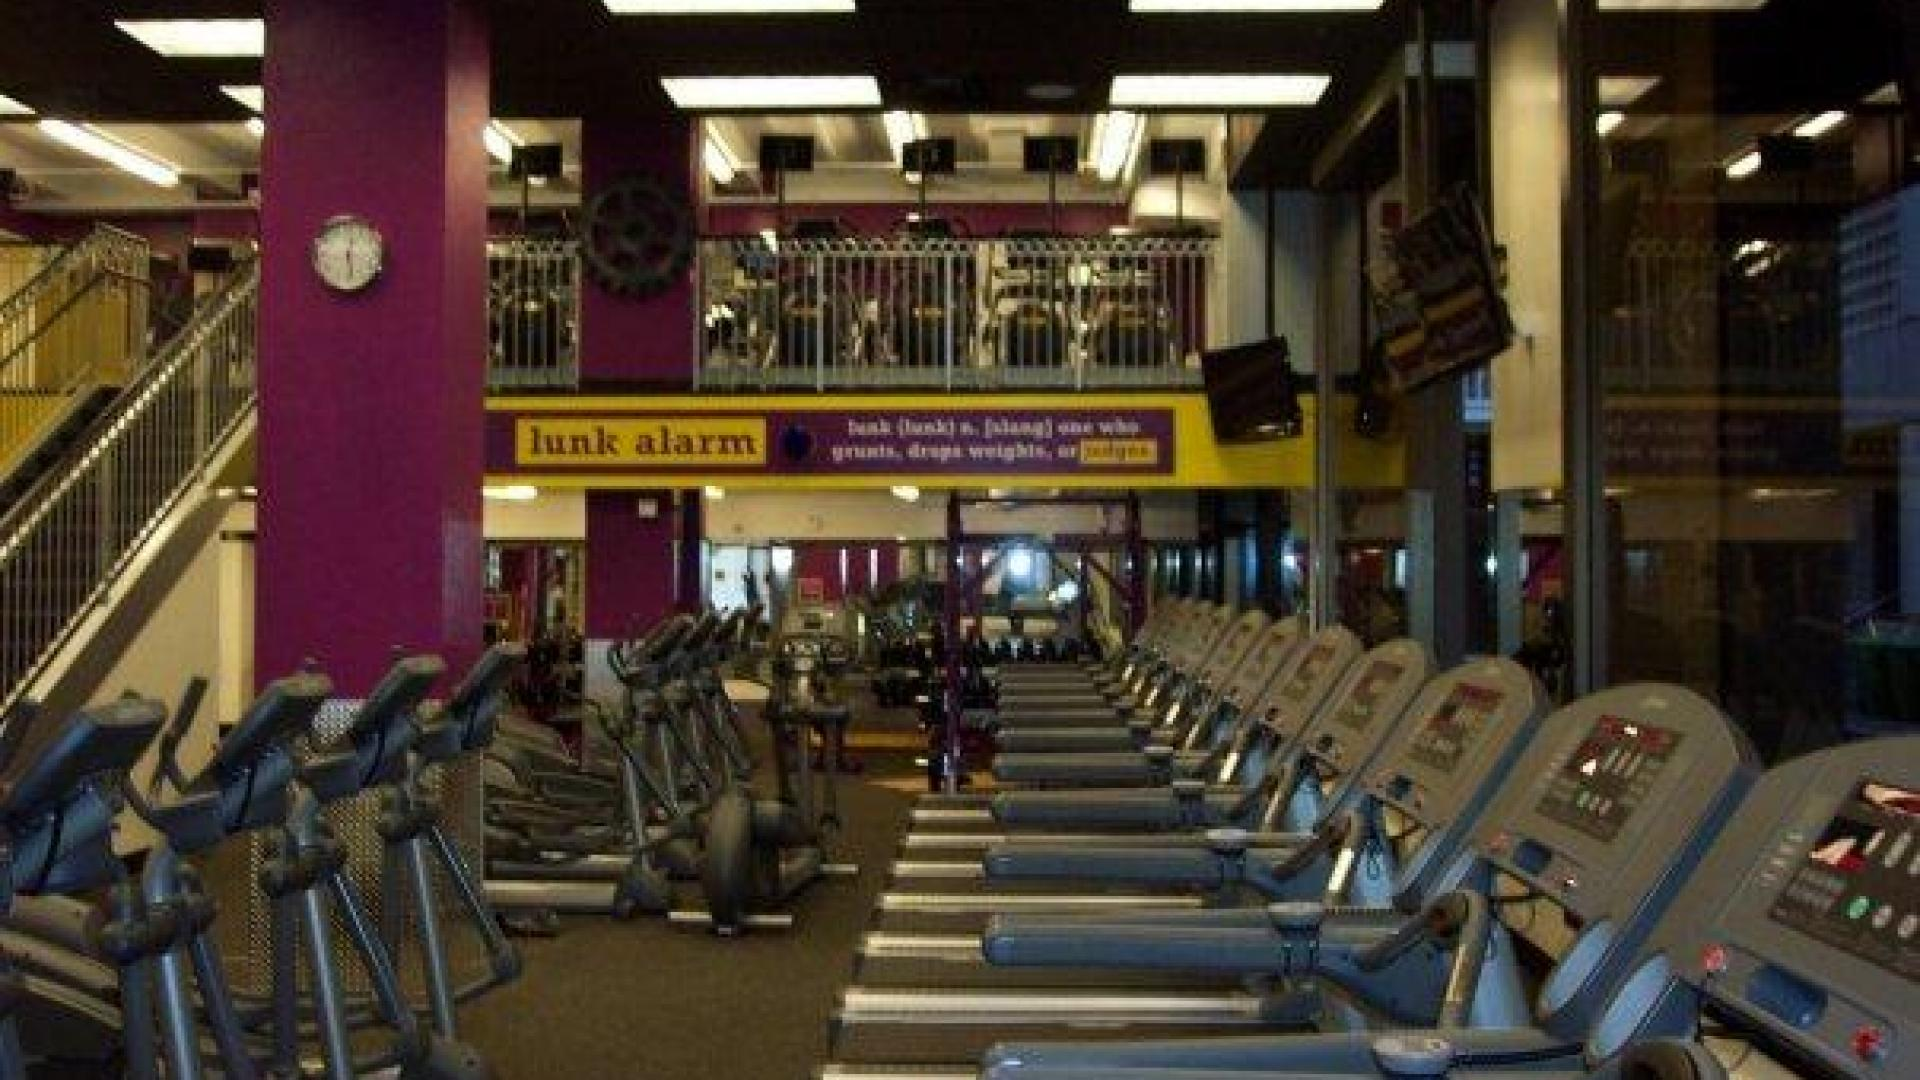 Gym in San Francisco CA  350 Sansome St  Planet Fitness